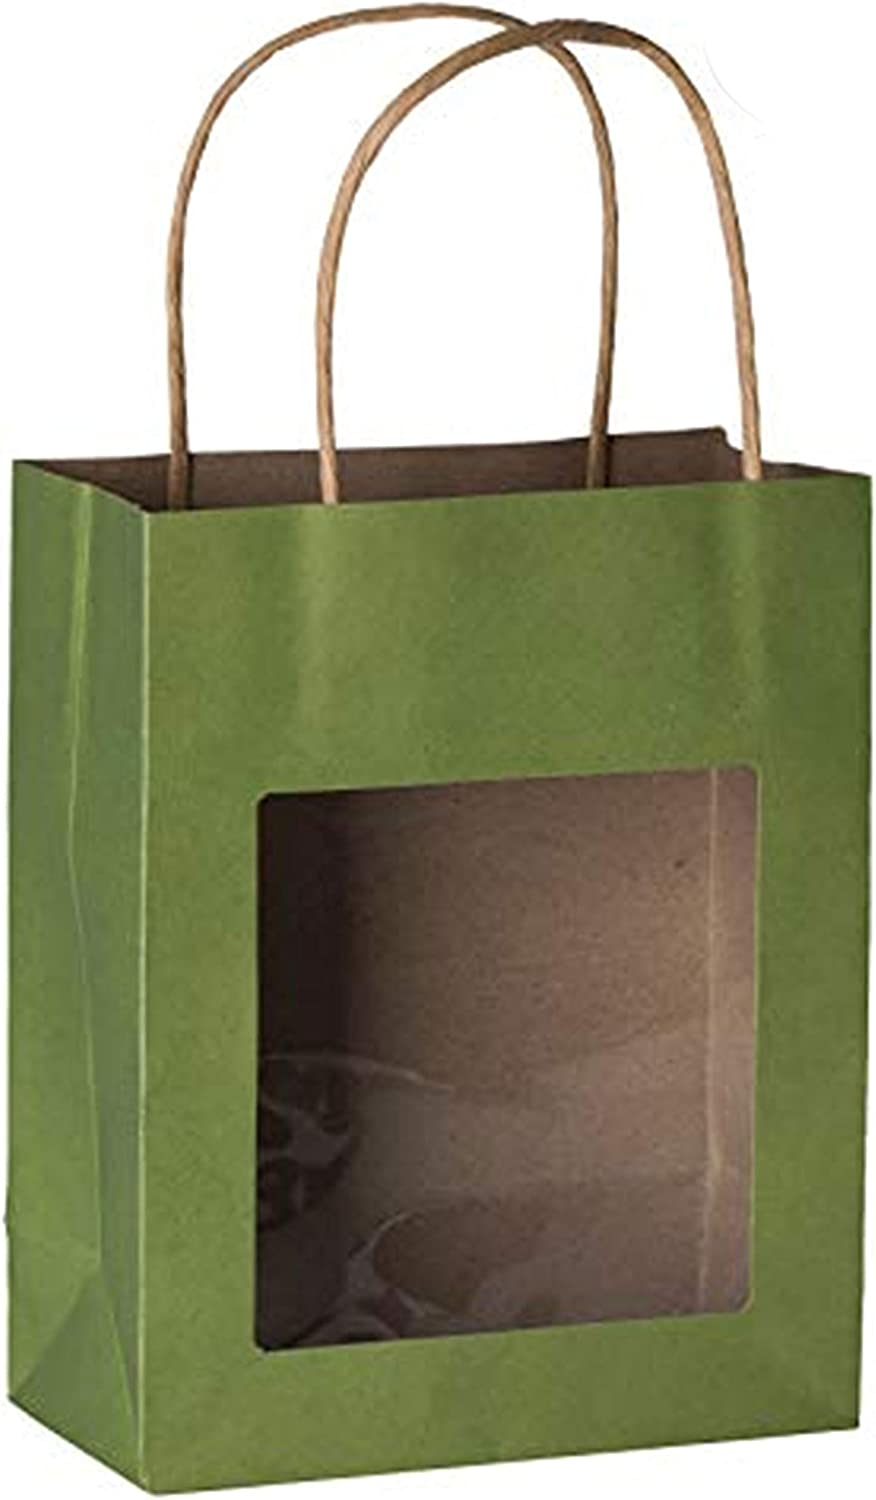 Hammont Green Kraft Paper Bag with Window (10 Pack) - Food Storing Pouches with Handles, Gift Bags with Transparent Window 7.75